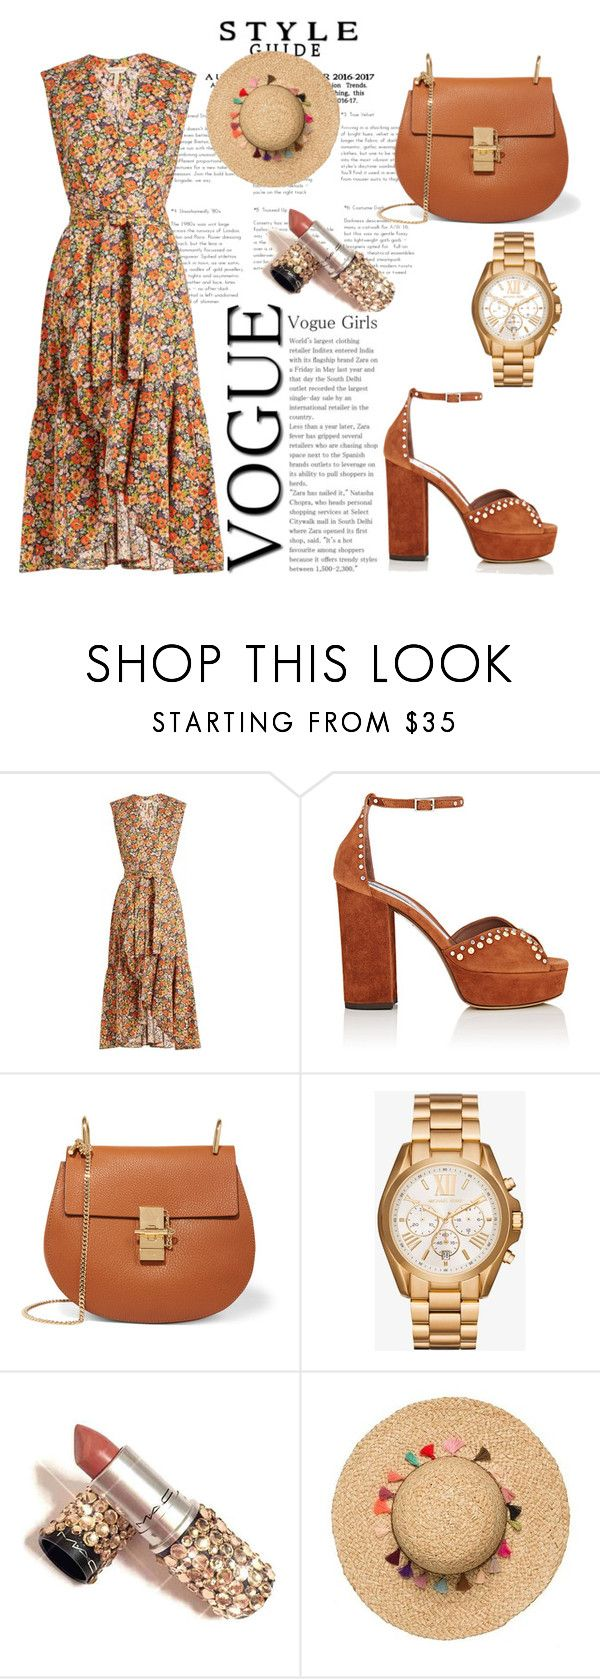 """""""Ma first set💛😉"""" by naynomis-man ❤ liked on Polyvore featuring Rebecca Taylor, Tabitha Simmons, Chloé and Michael Kors"""